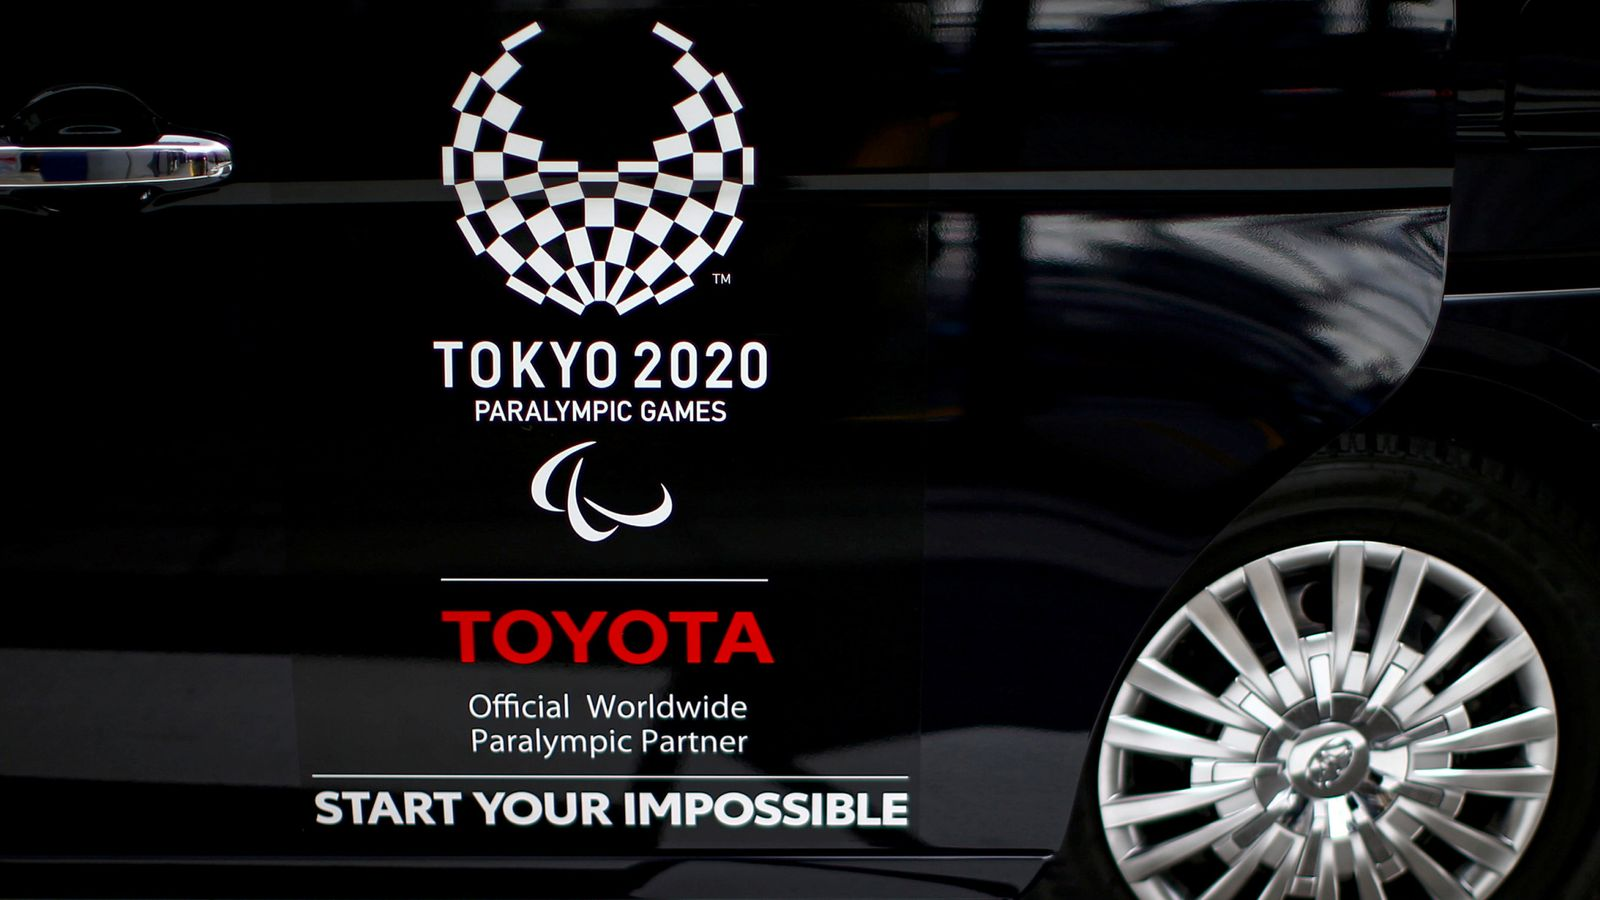 Tokyo Olympics: Major sponsor Toyota won't air Games ads or attend opening ceremony